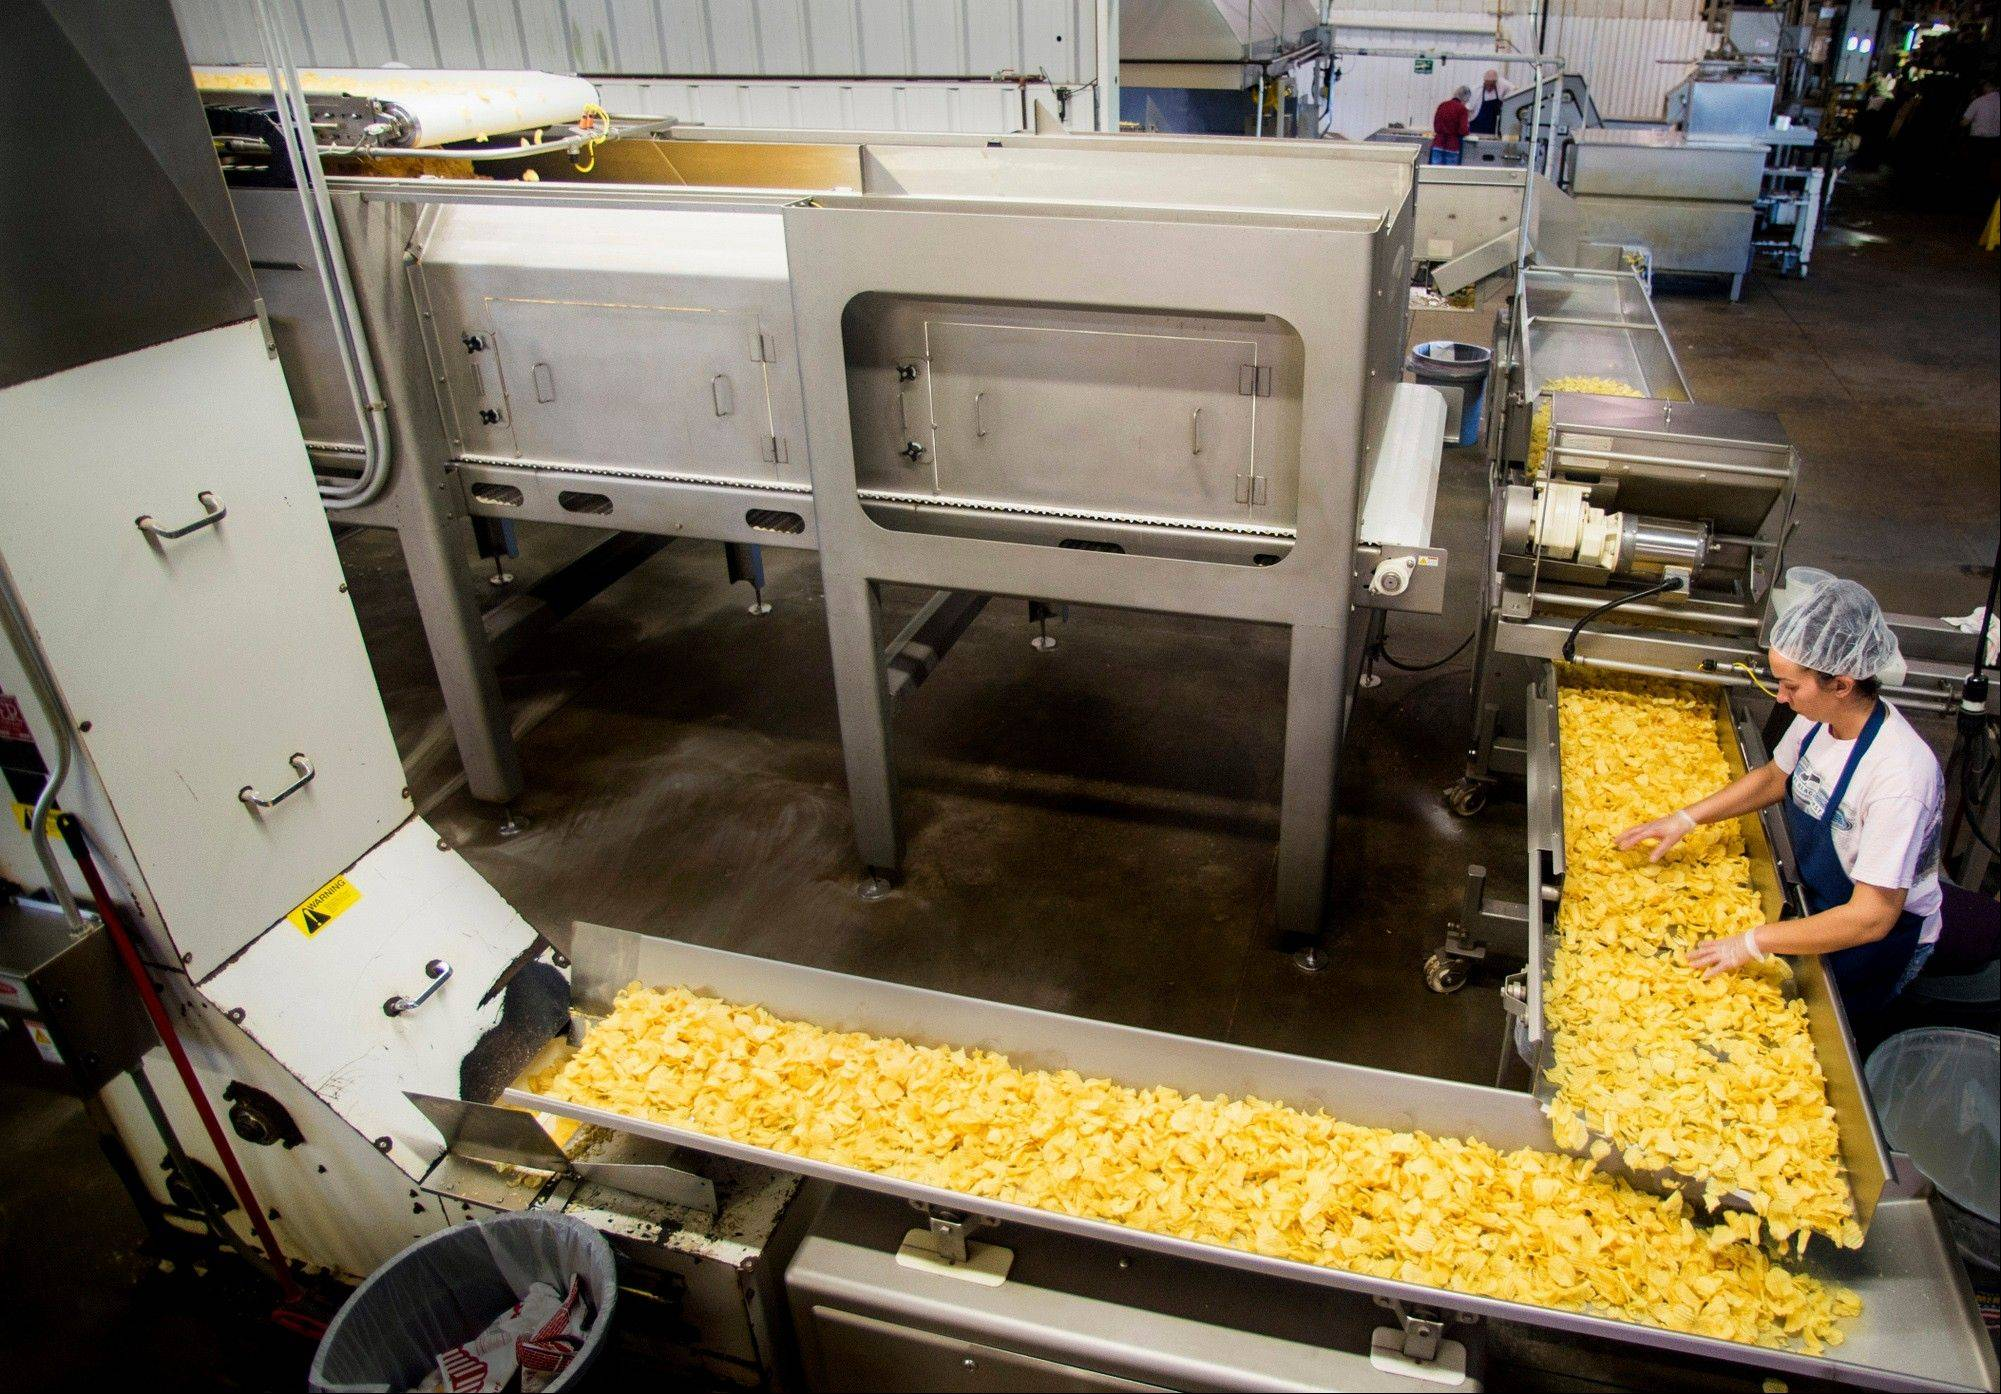 Production worker Sarah Gibson checks for quality as freshly cooked potato chips are gathered in an accumulator for packaging at Kitchen Cooked in Farmington.